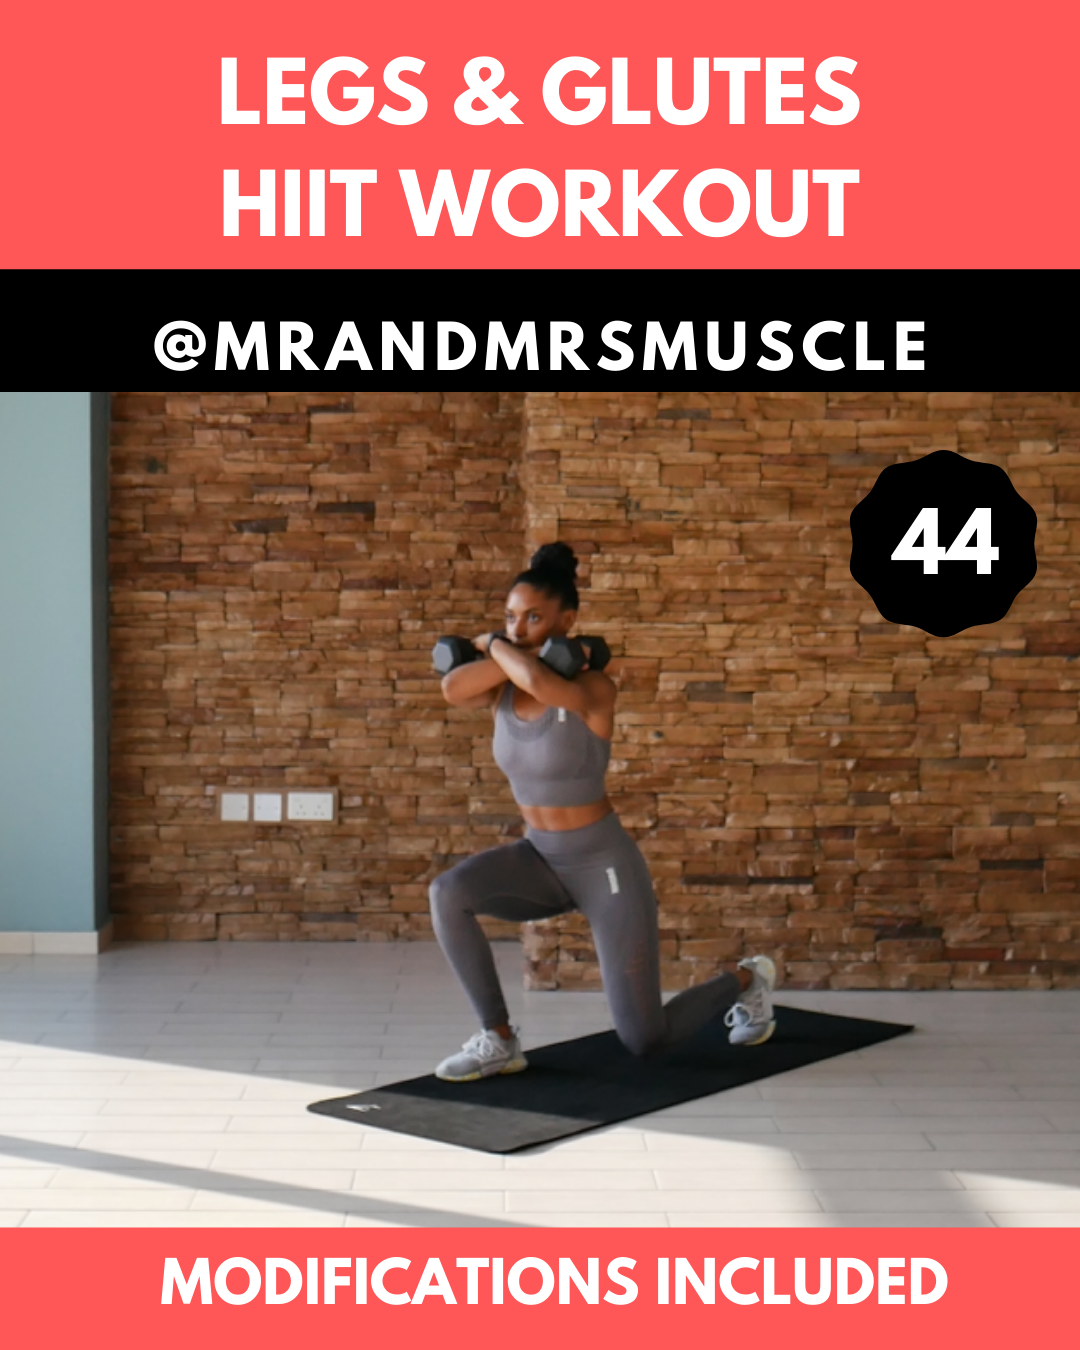 Dumbbell Legs and Glutes Home Workout